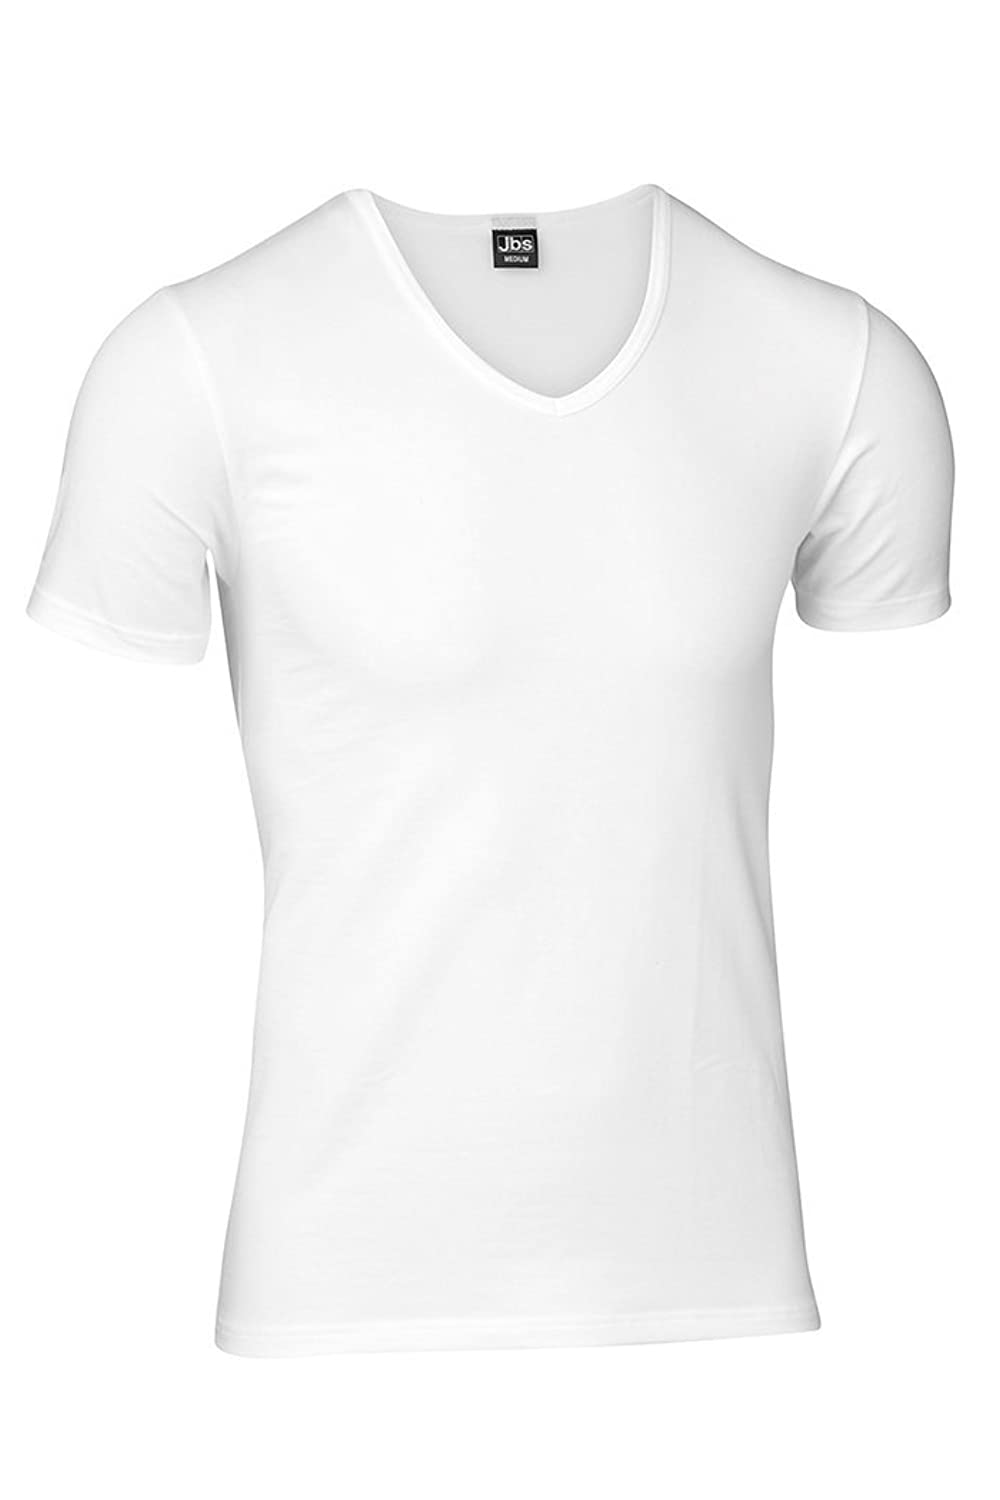 JBS 1030 V-Neck Shirt 4er Pack in black und white S bis 2XL